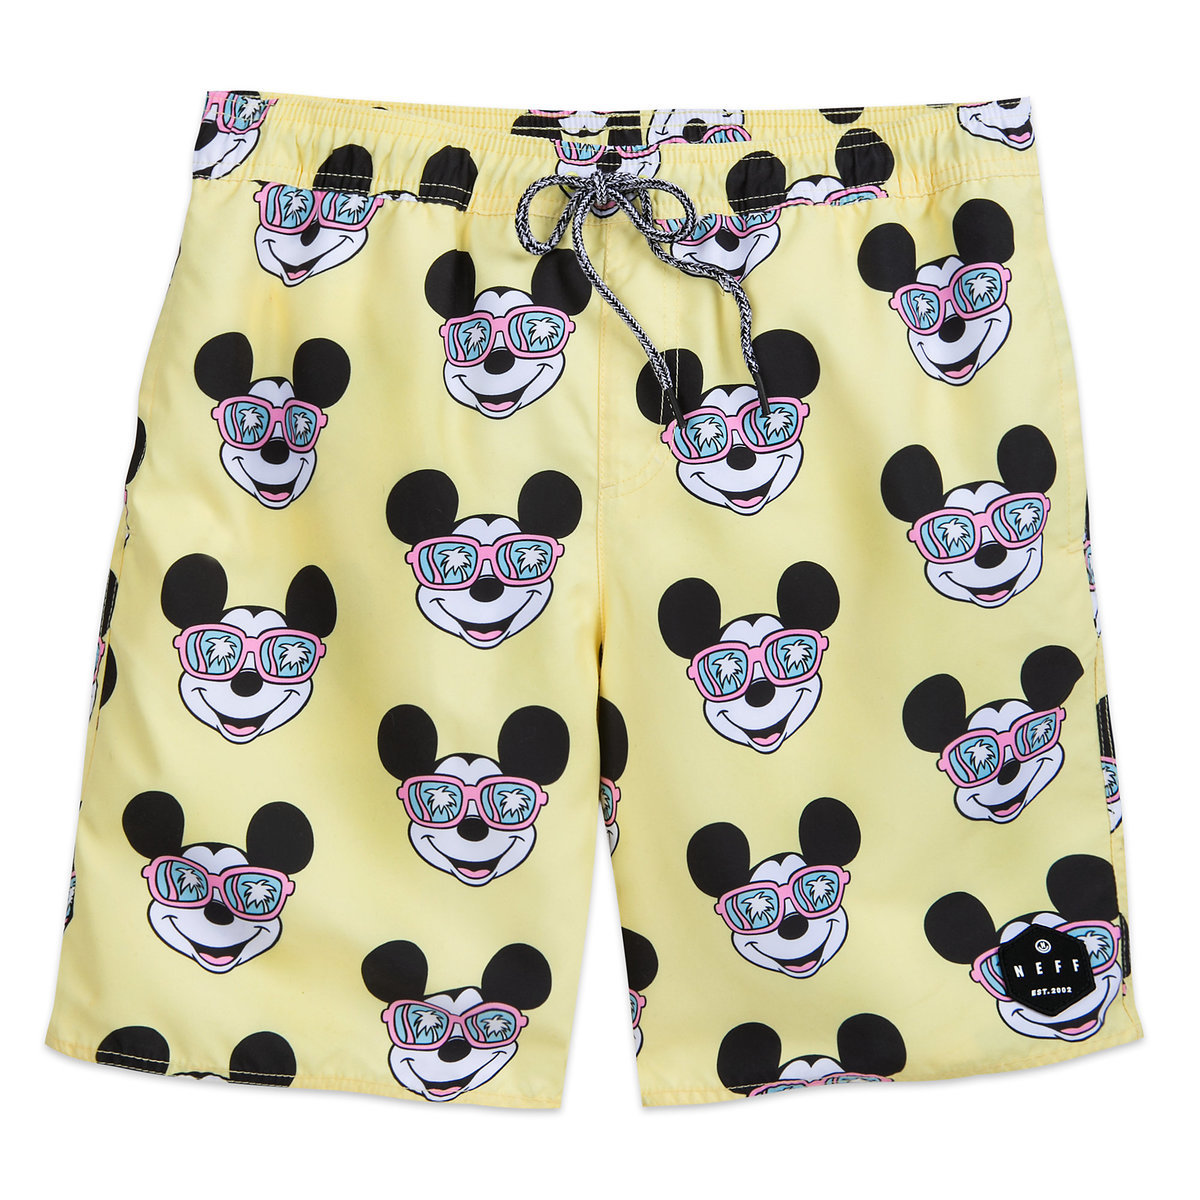 d15f0f9505 Product Image of Mickey Mouse Swim Trunks for Men by Neff # 1